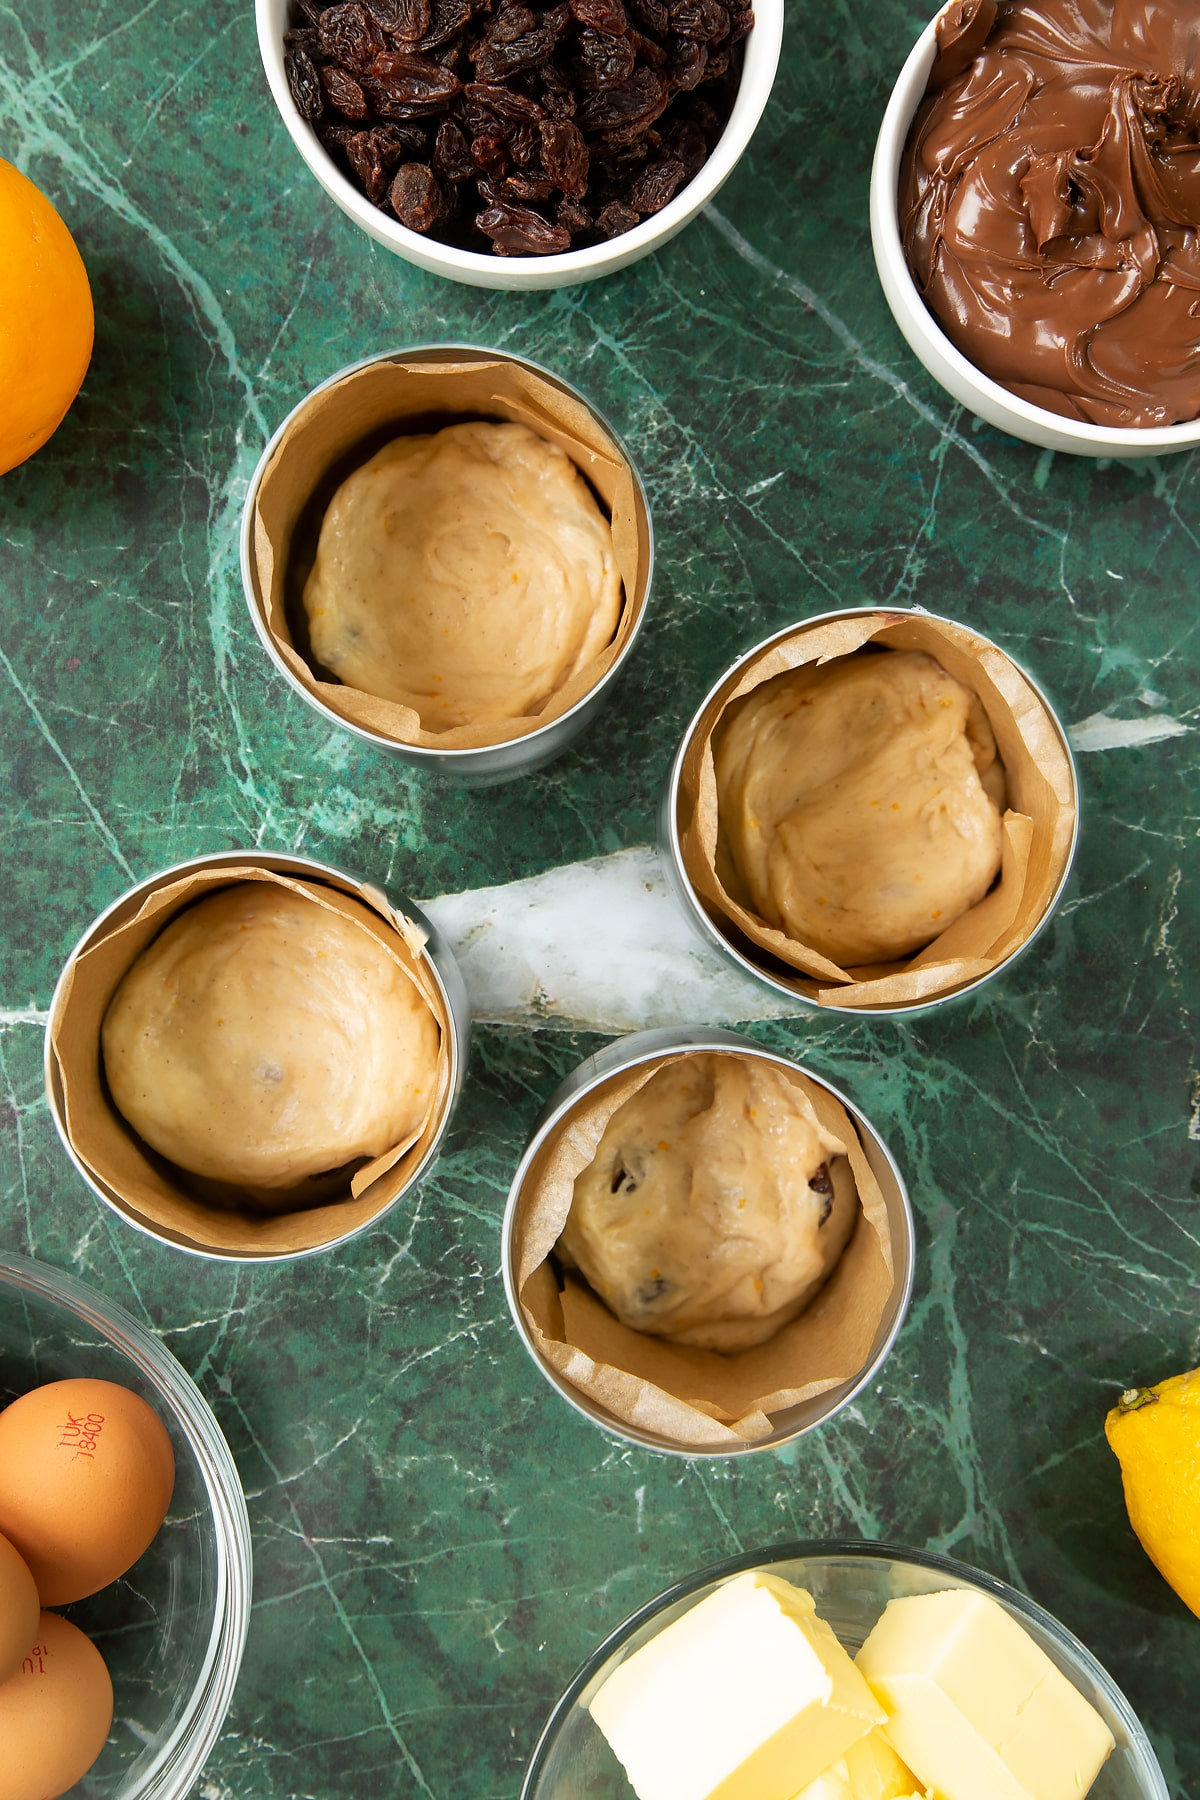 4 lined tin cans, each containing dough filled with Nutella. Ingredients to make Nutella panettone surround the cans.